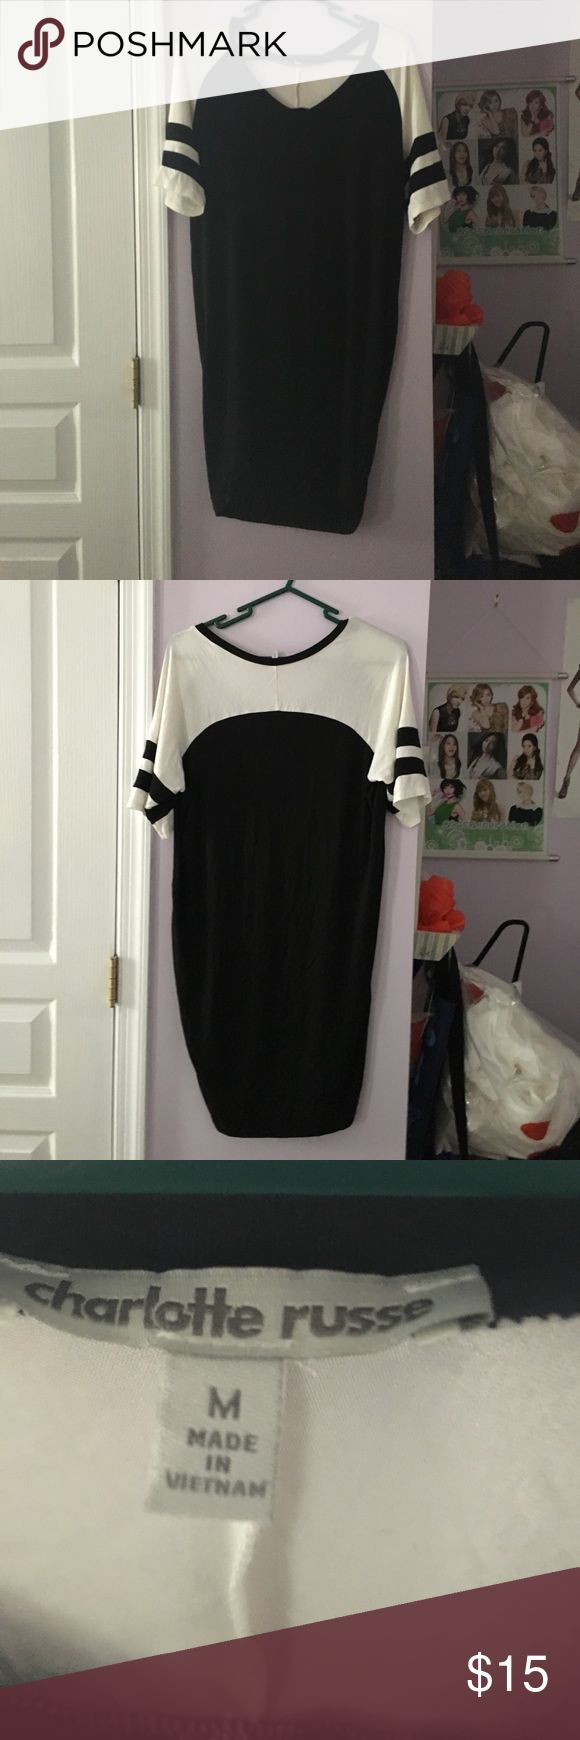 Black and white sporty dress It's has been gently used and is in great condition. The fabric is soft and stretch. Can also fit anyone who is a size large. Any questions leave them down below and I will get back to you as soon as possible. Charlotte Russe Dresses Mini